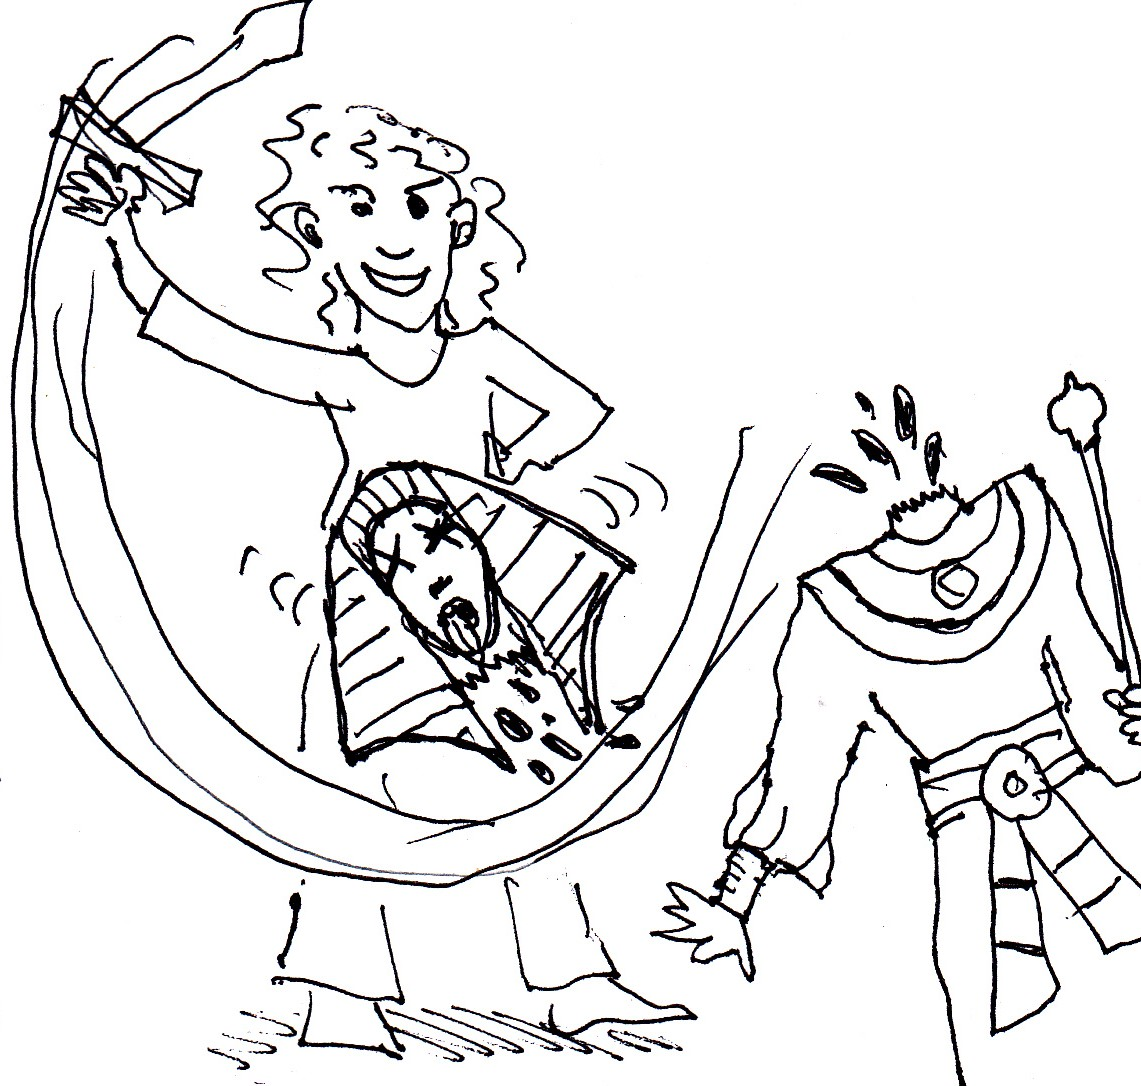 tamales coloring pages - photo #11